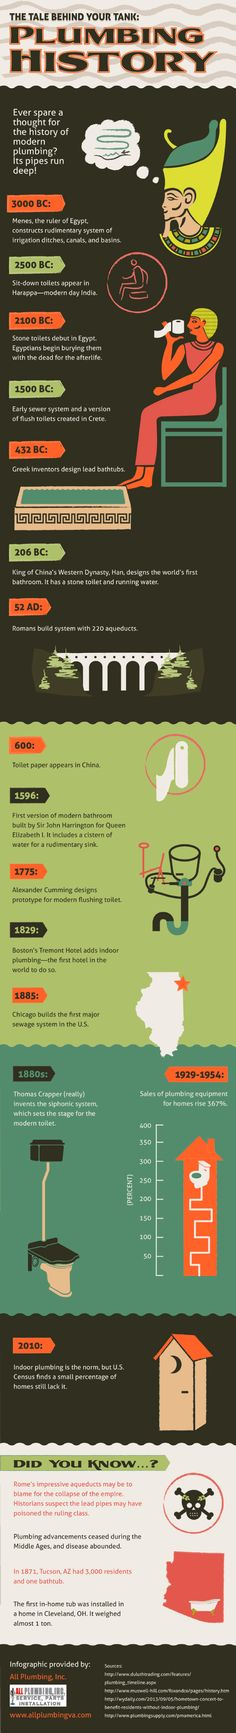 During the Middle Ages, inventors and innovators shifted their focus away from  plumbing advancements to work on other projects. During this time, diseases abounded  in full force. This infographic from All Plumbing, Inc. in Arlington, Virginia talks more  about the history of plumbing.